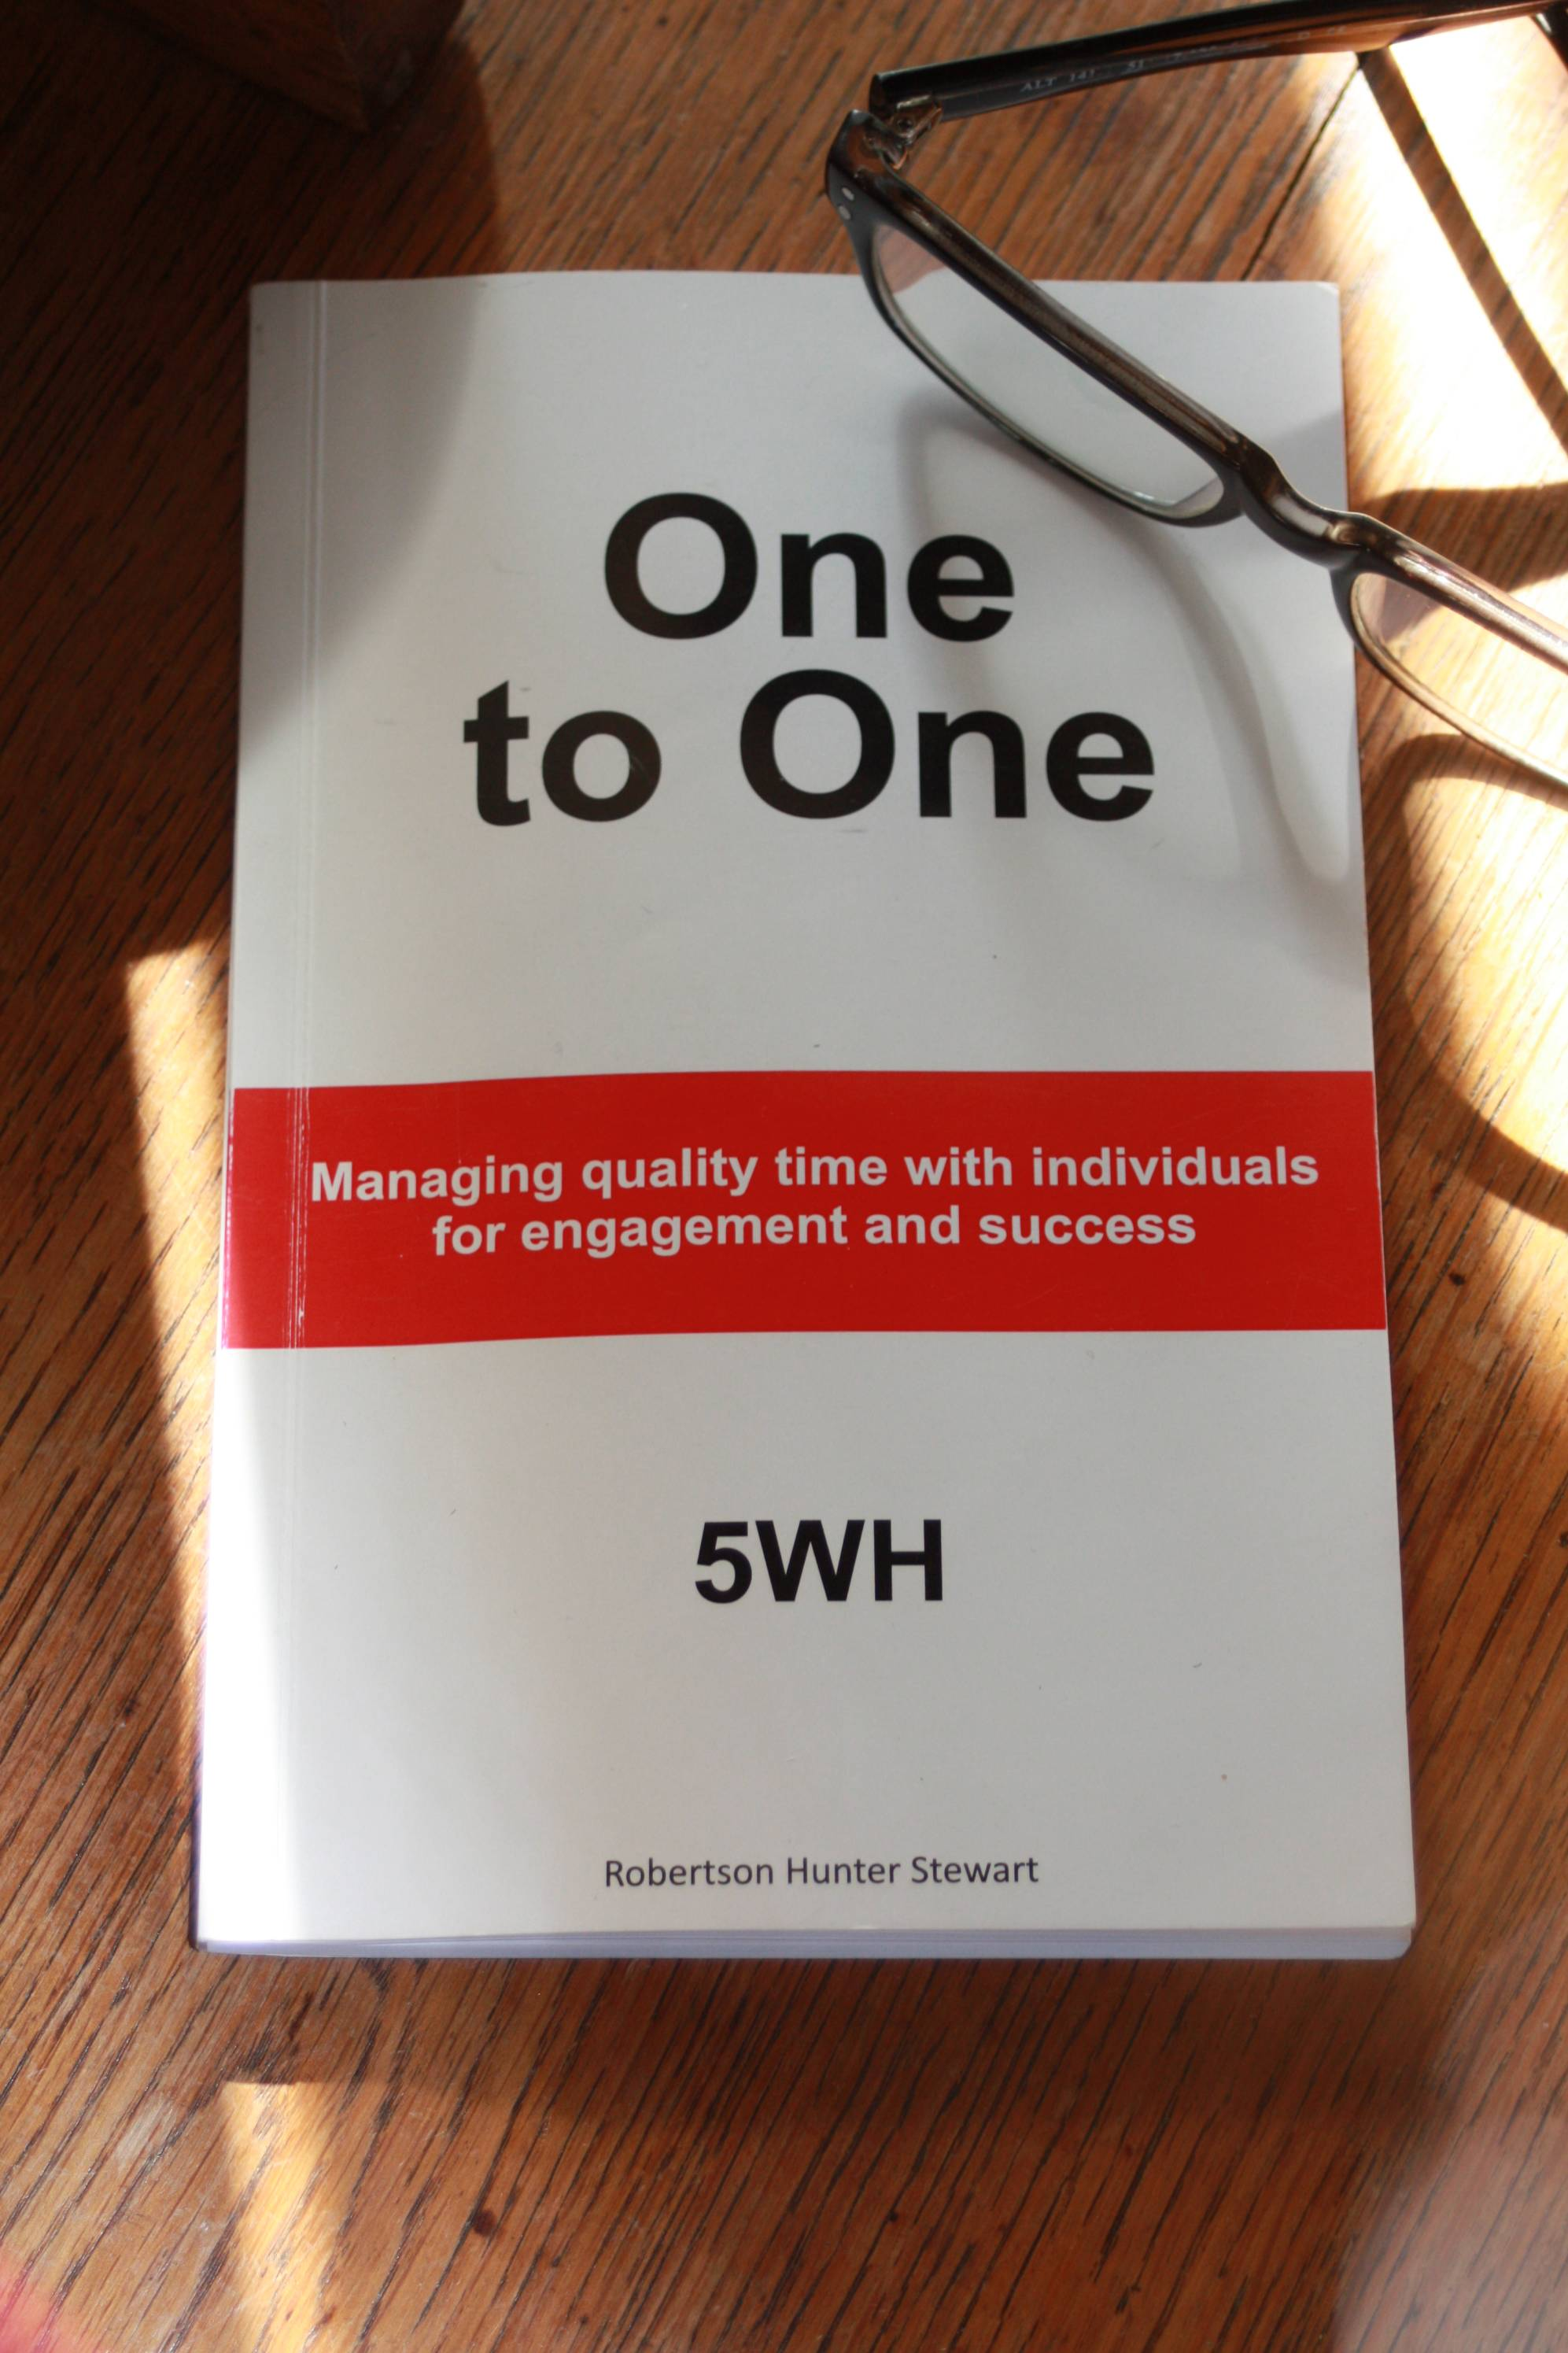 One to One : Manging quality time with individuals for engagement and success's Ebook Image